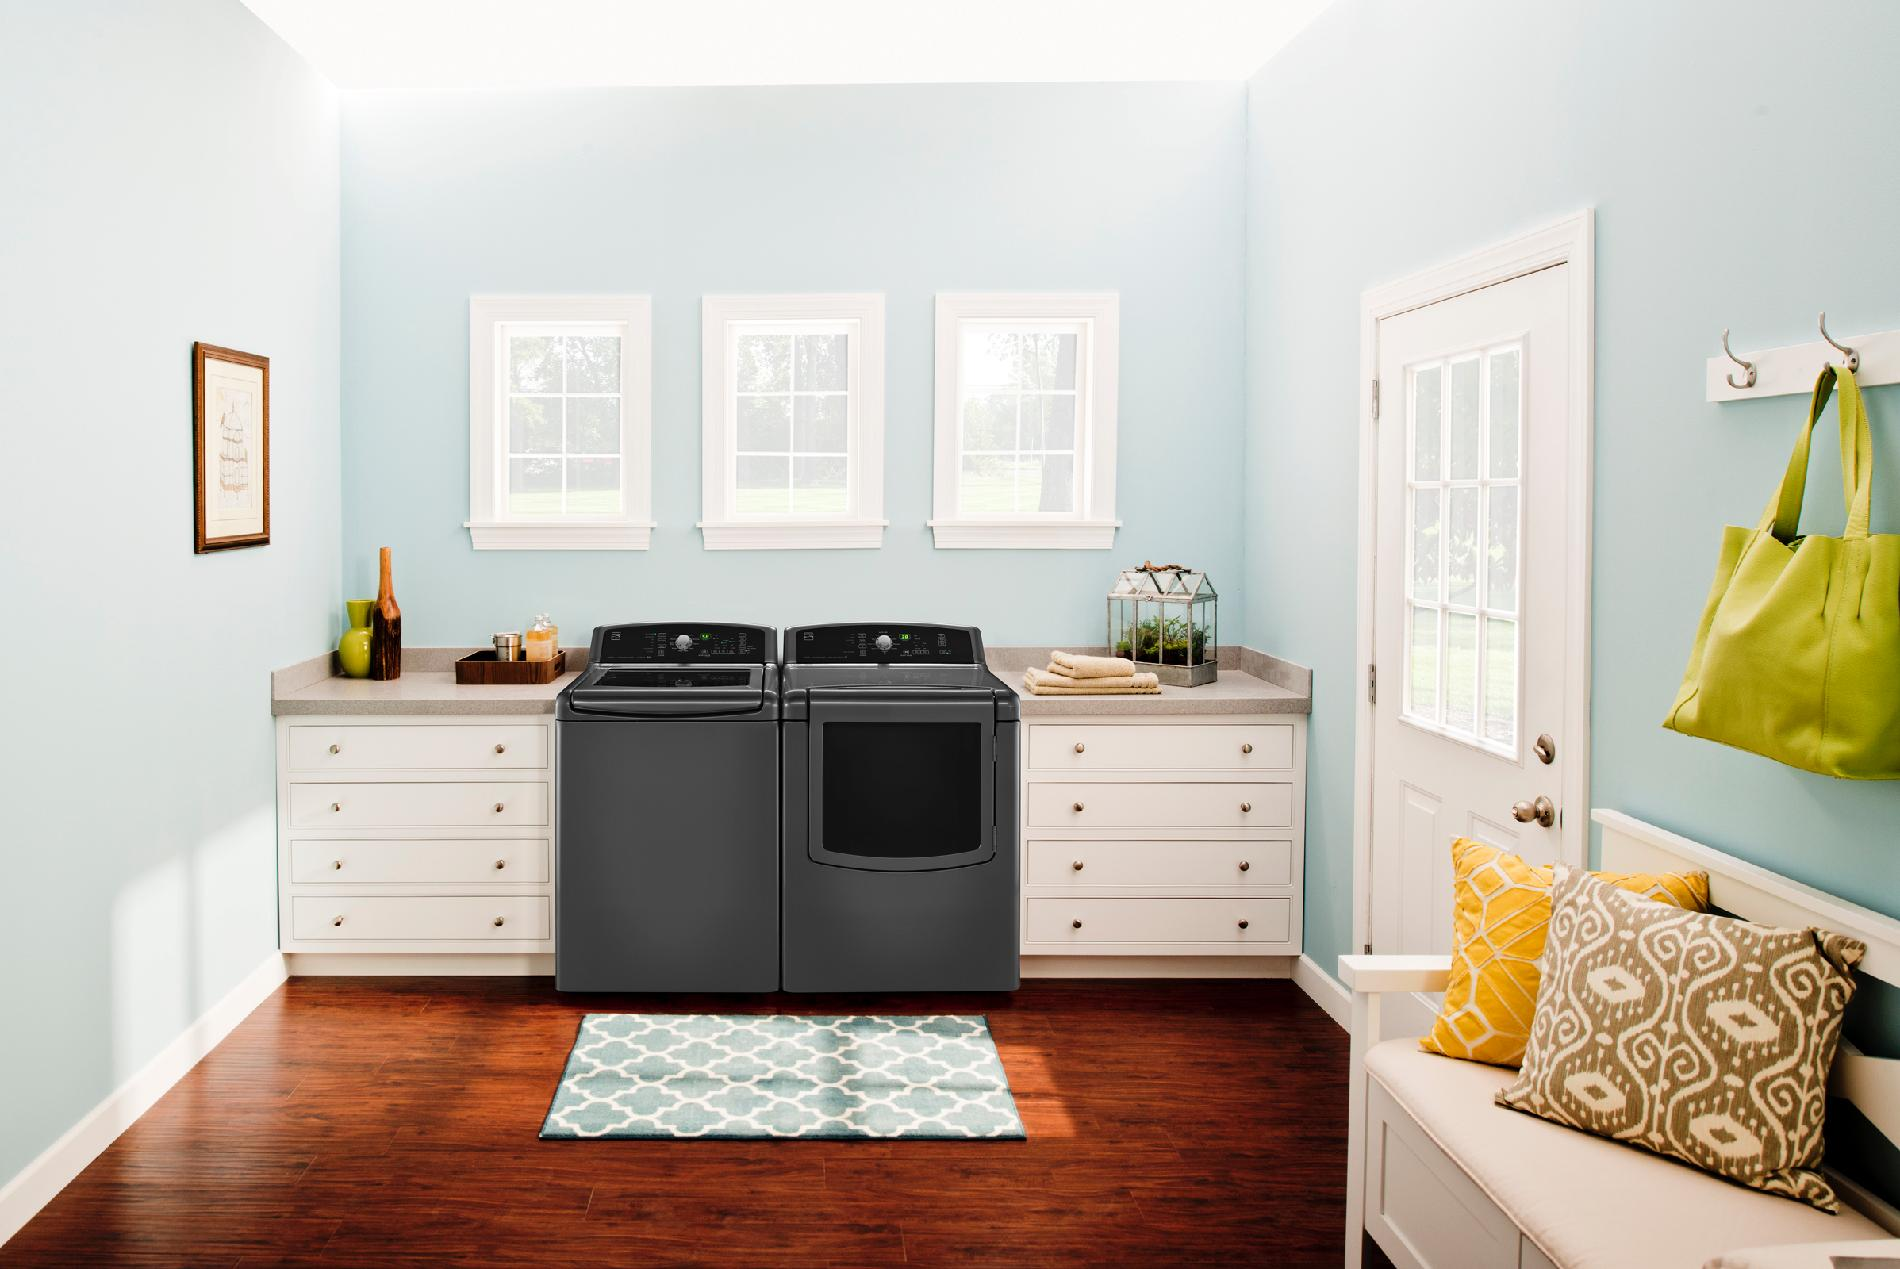 Kenmore 4.5 cu. ft. High-Efficiency Top-Load Washer w/ Express Cycle - Metallic